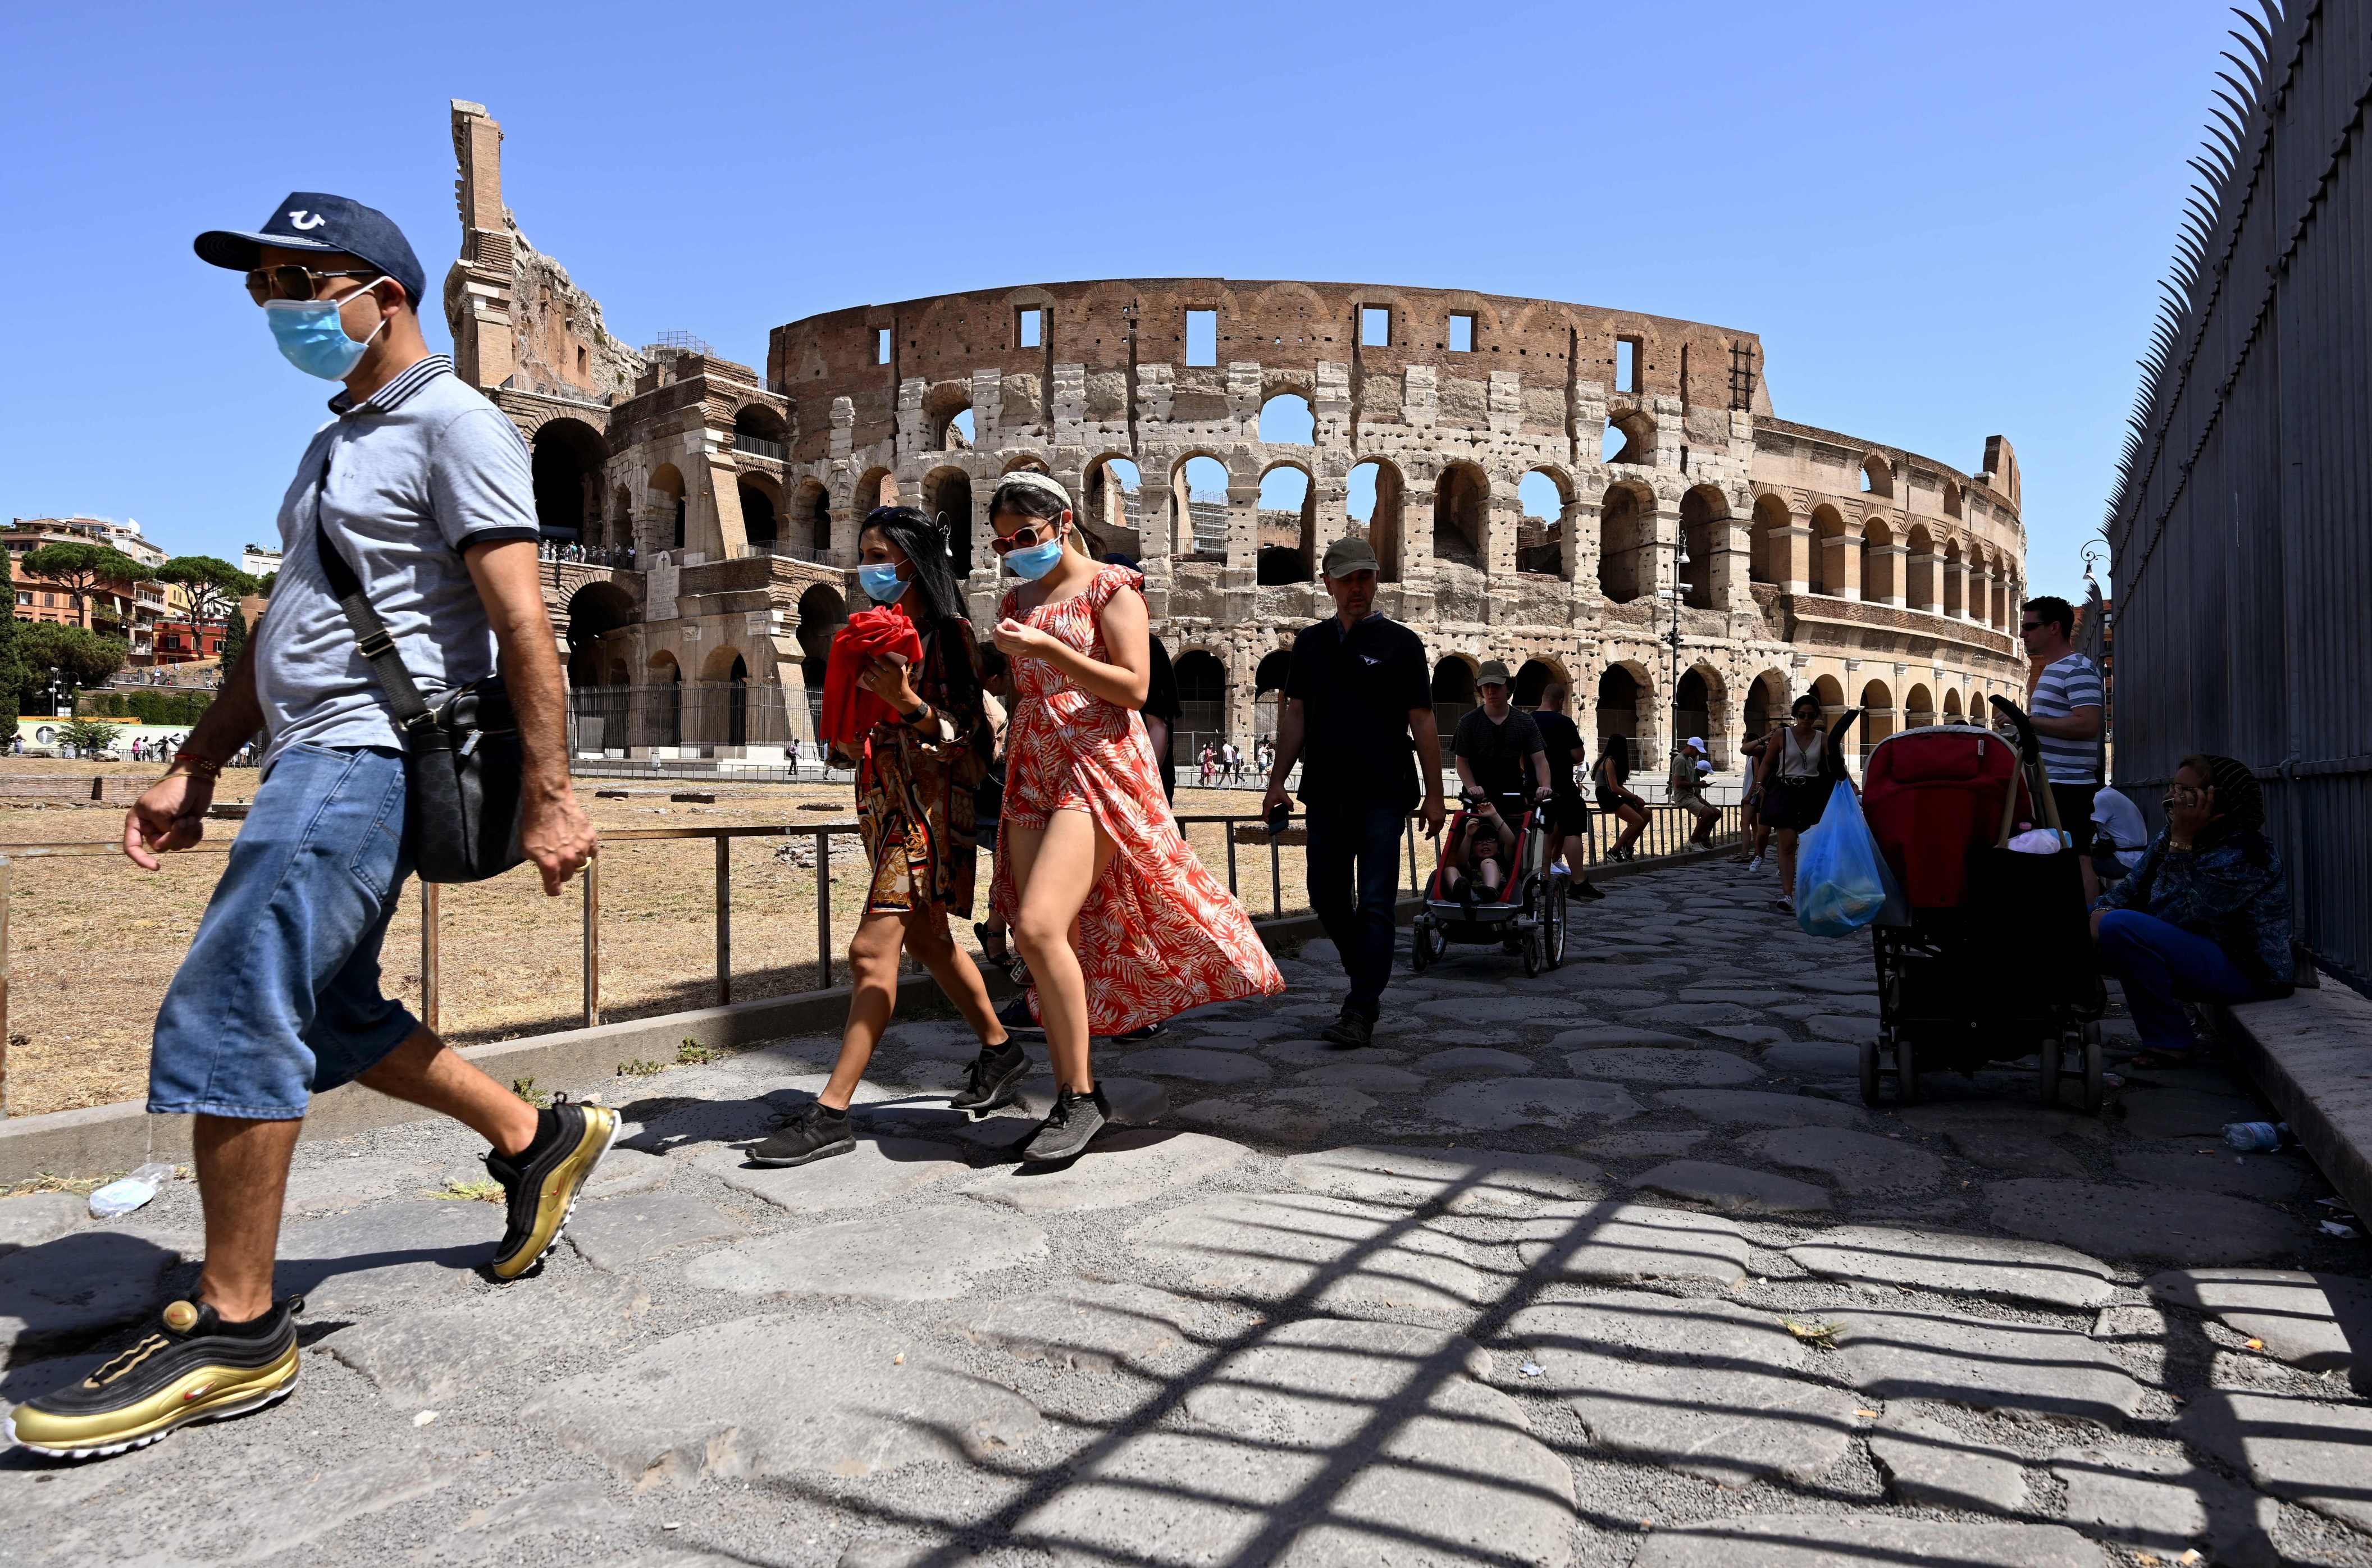 Vacationers, migrants drive Italy's surge in COVID cases - International